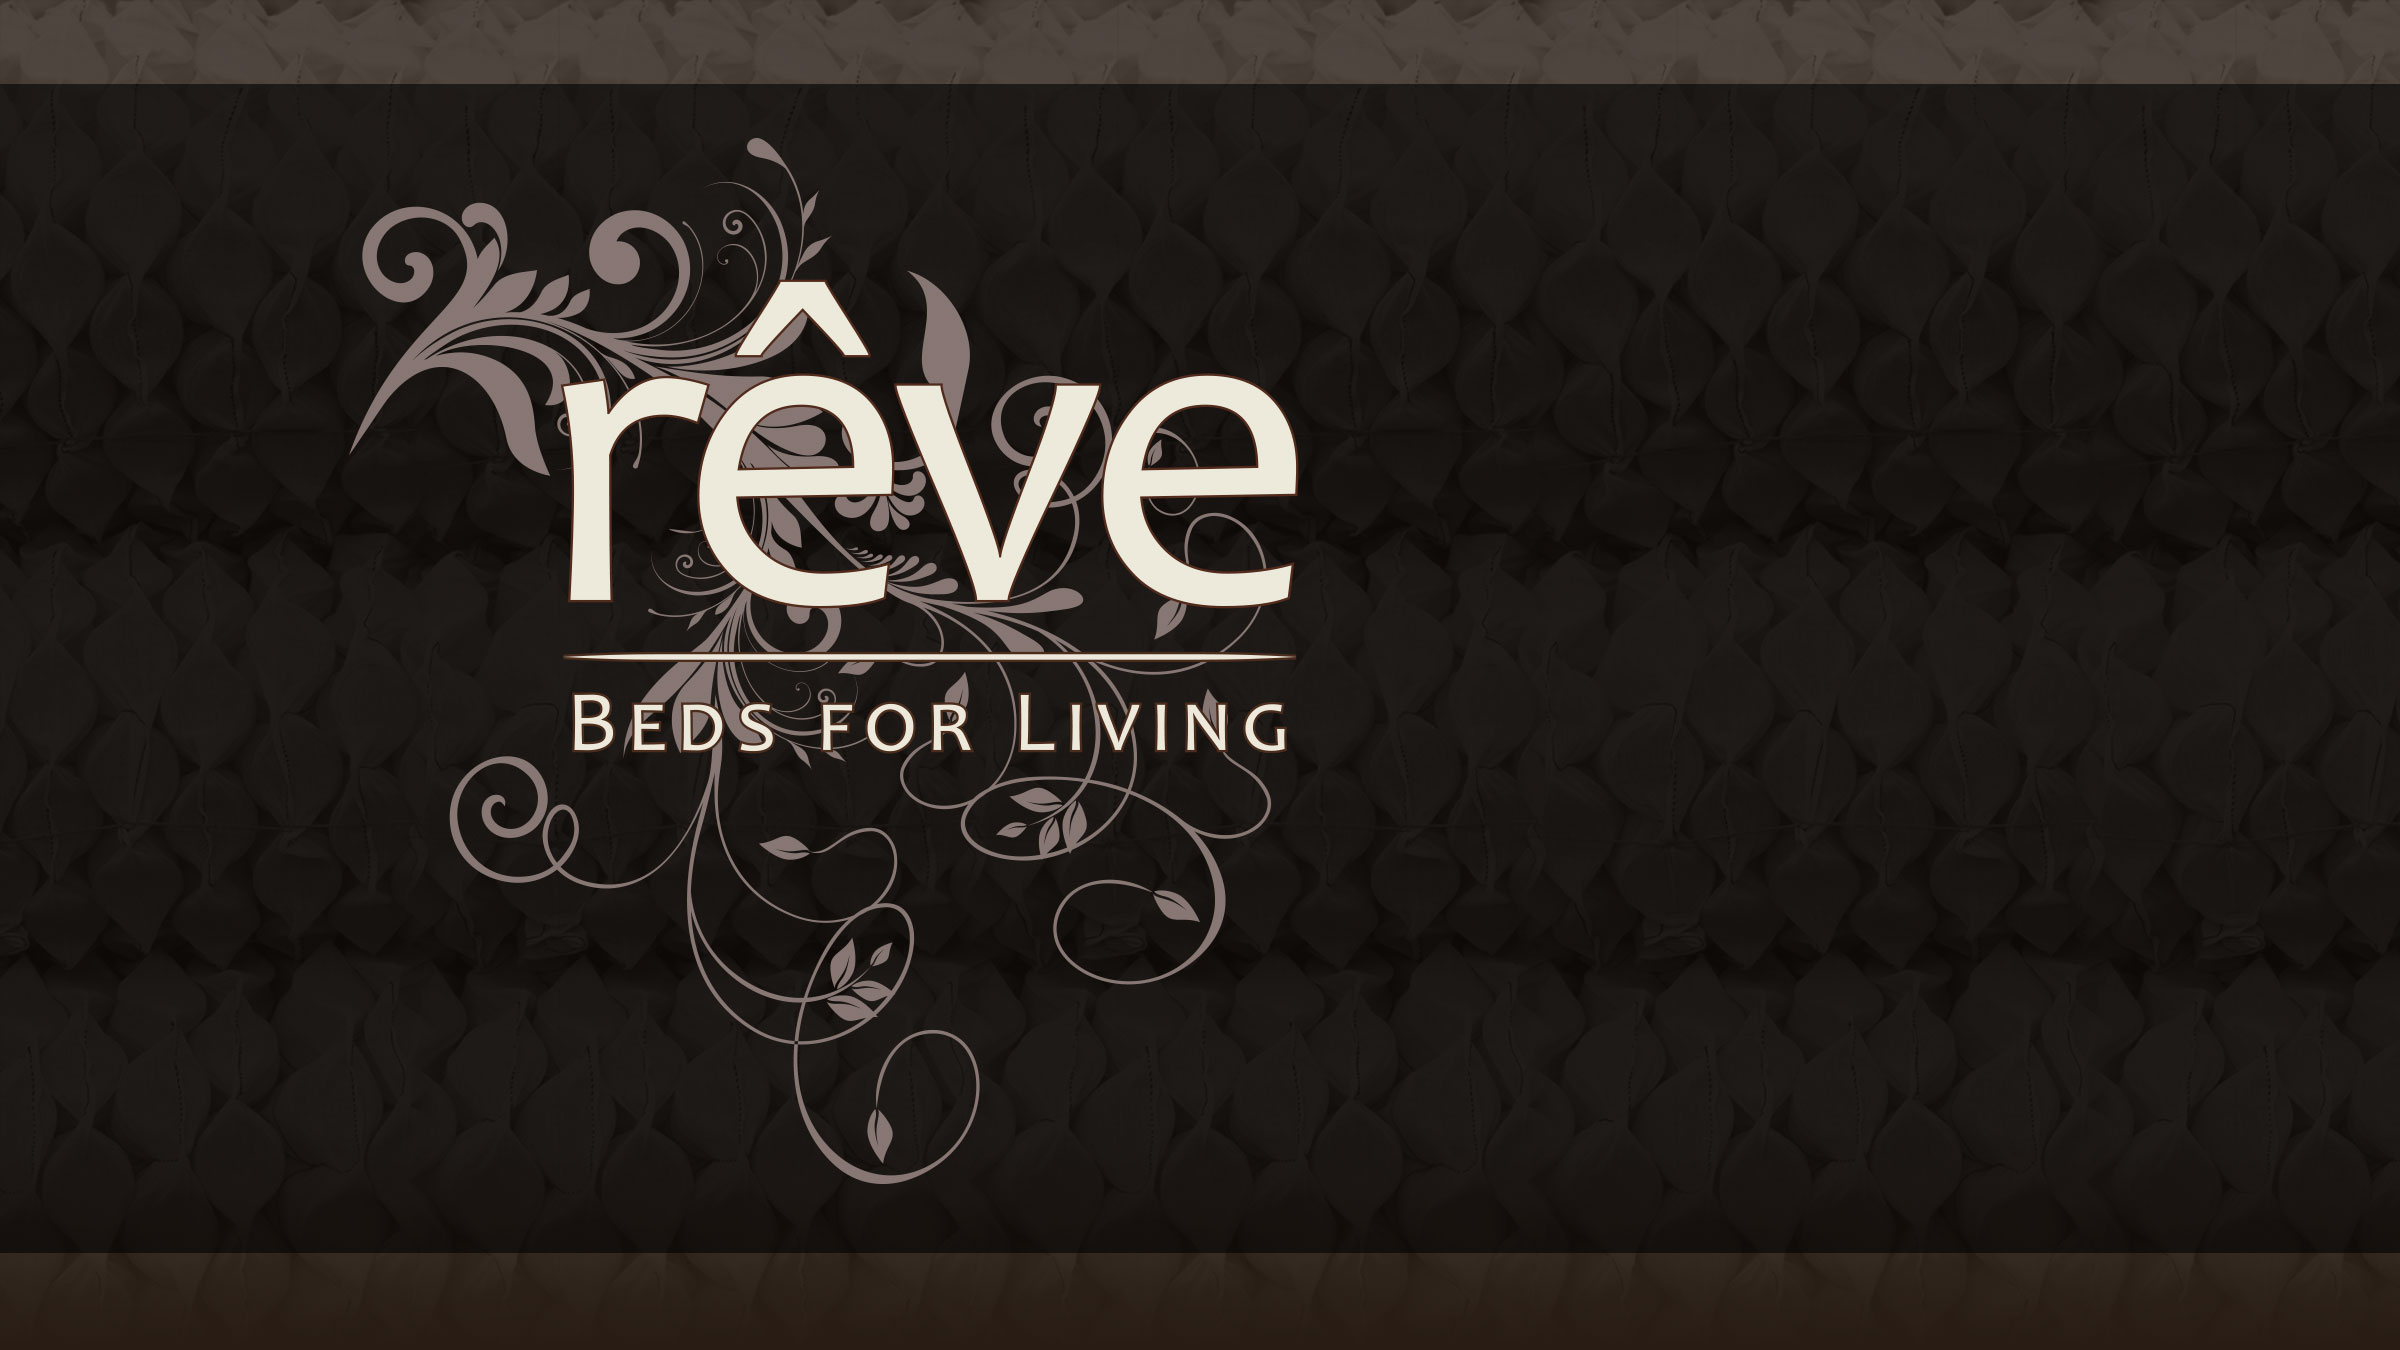 Rêve Beds for Living